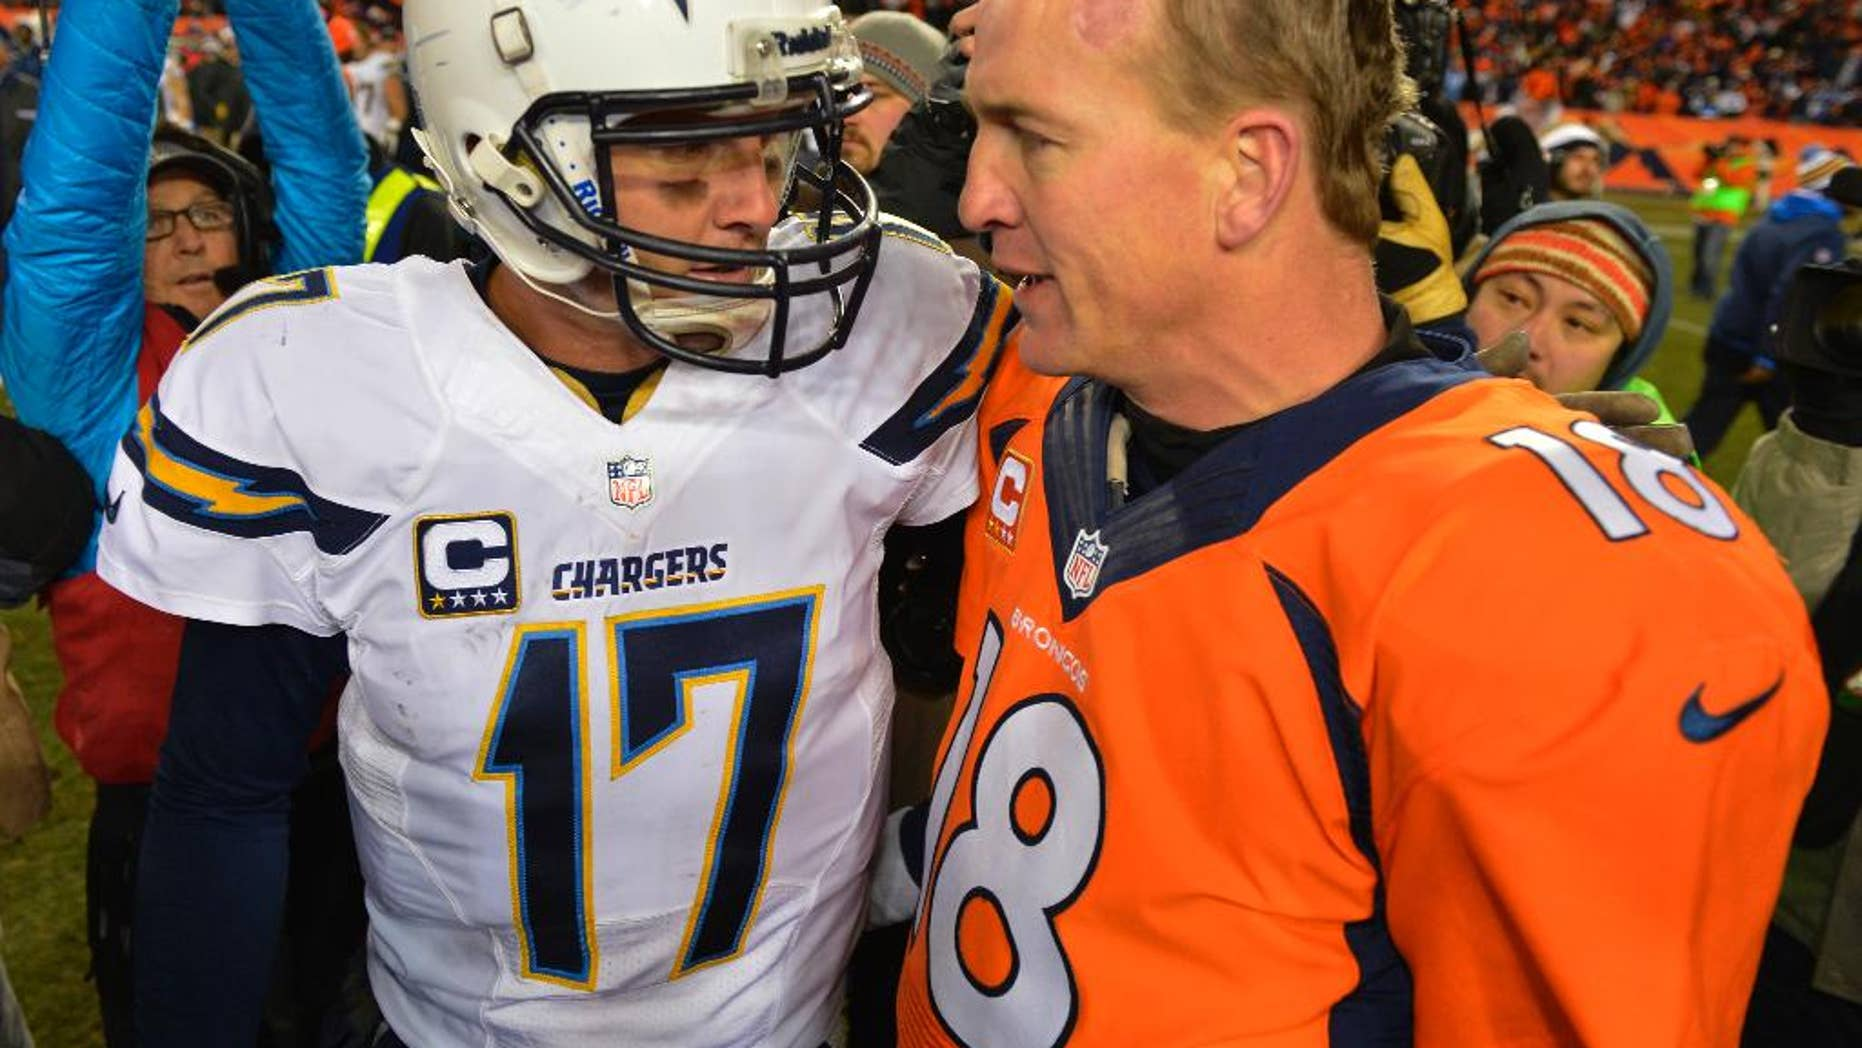 FILE - In this Jan. 12, 2014, file photo, San Diego Chargers quarterback Philip Rivers, left, and Denver Broncos quarterback Peyton Manning greet each other at midfield after the Broncos beat the Chargers 24-17 in an NFL AFC division playoff football game in Denver. The Broncos fear no one in the AFC, nor should they given their recent record. There is one opponent that gets Peyton Manning and company a bit unsettled, though, and that's who they take on Thursday night, Oct. 23, 2014, when the San Diego Chargers come visiting. (AP Photo/Jack Dempsey, File)